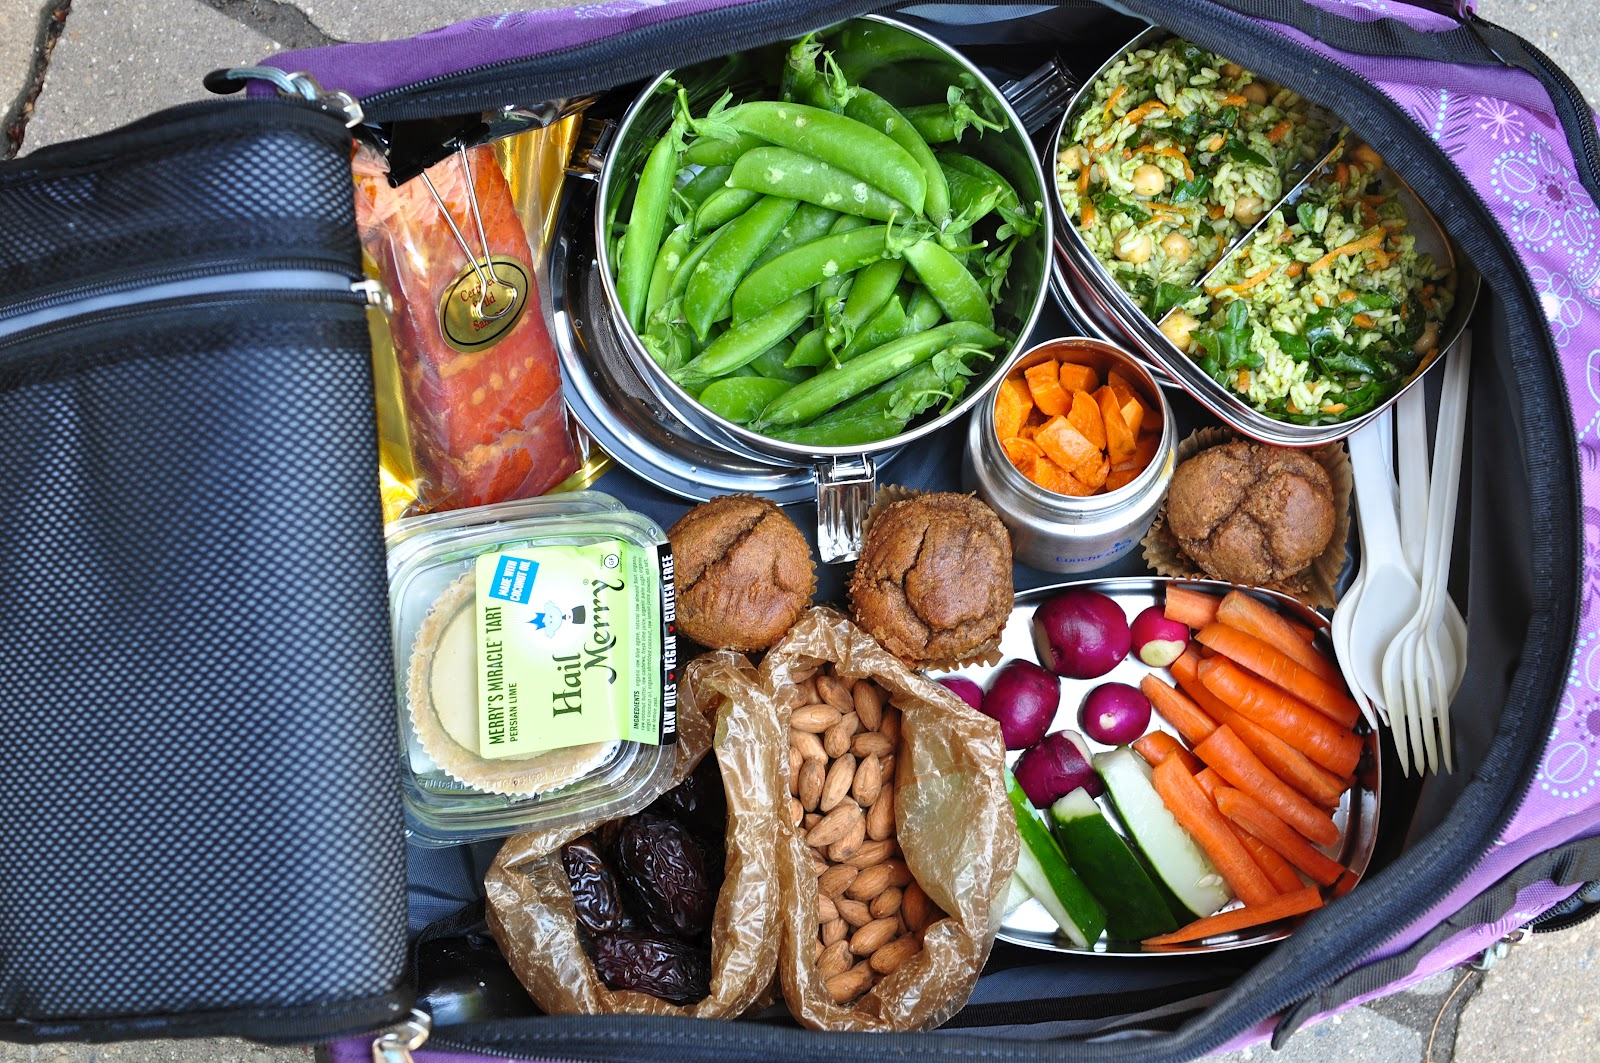 Image result for health food traveliing